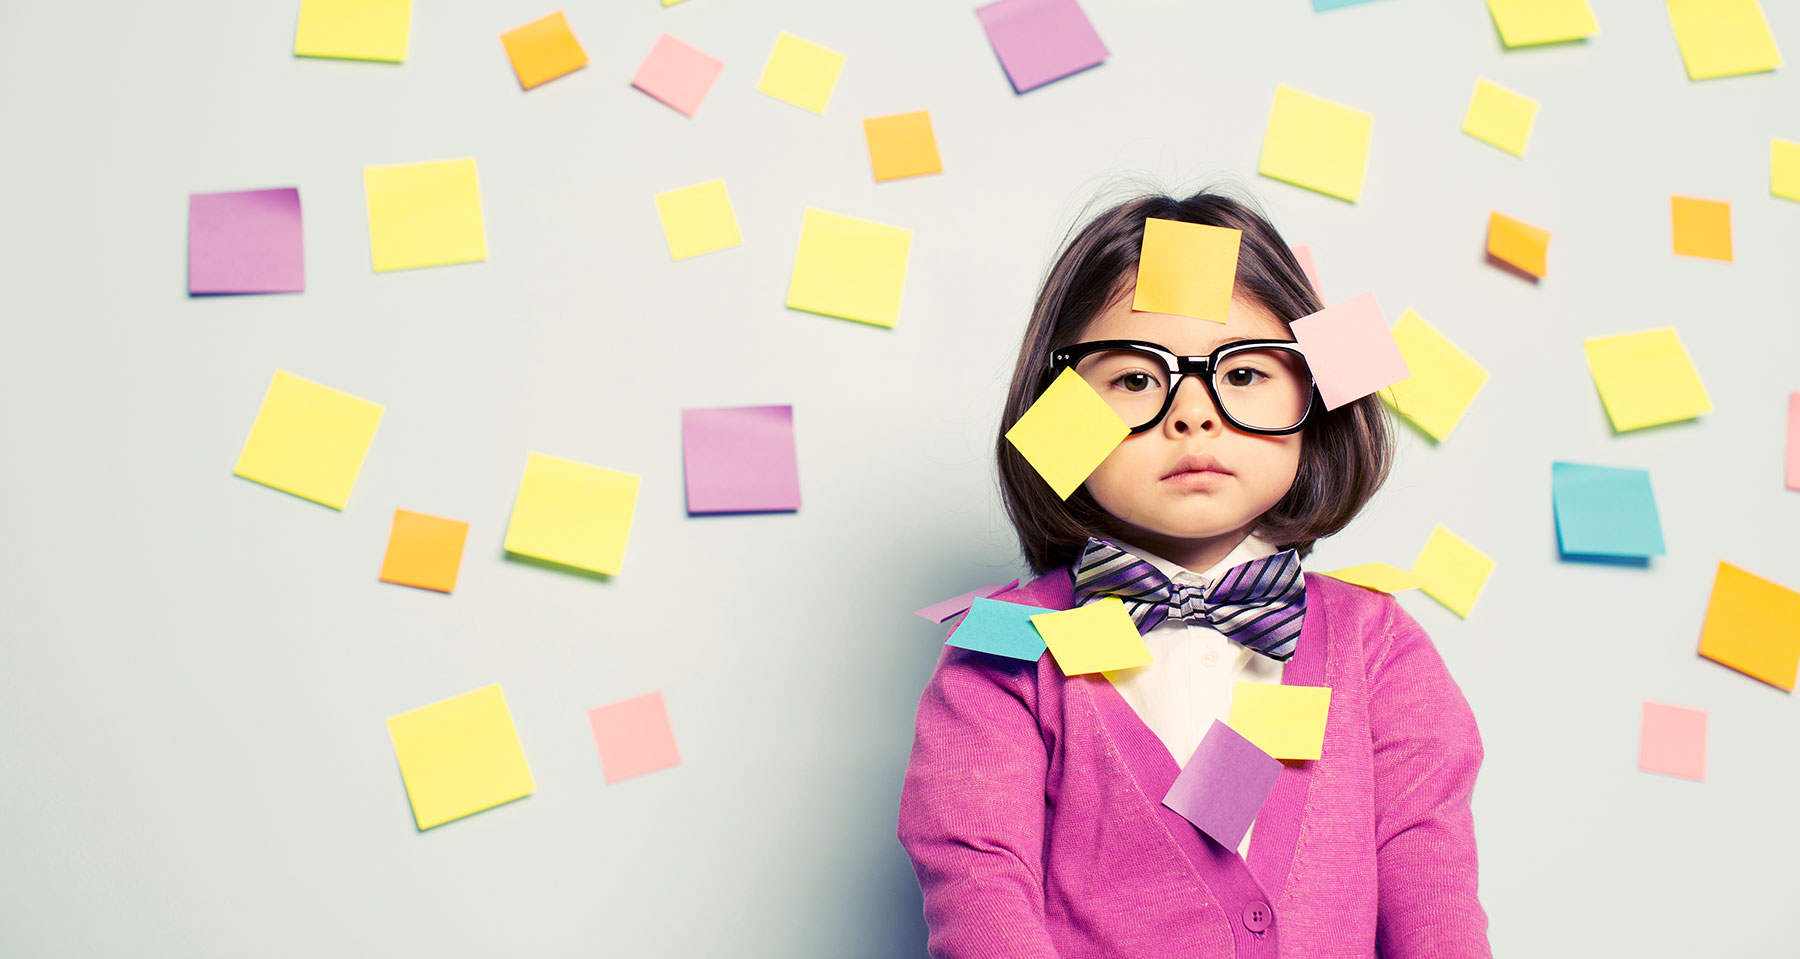 studious girl overwhelmed with post-it notes